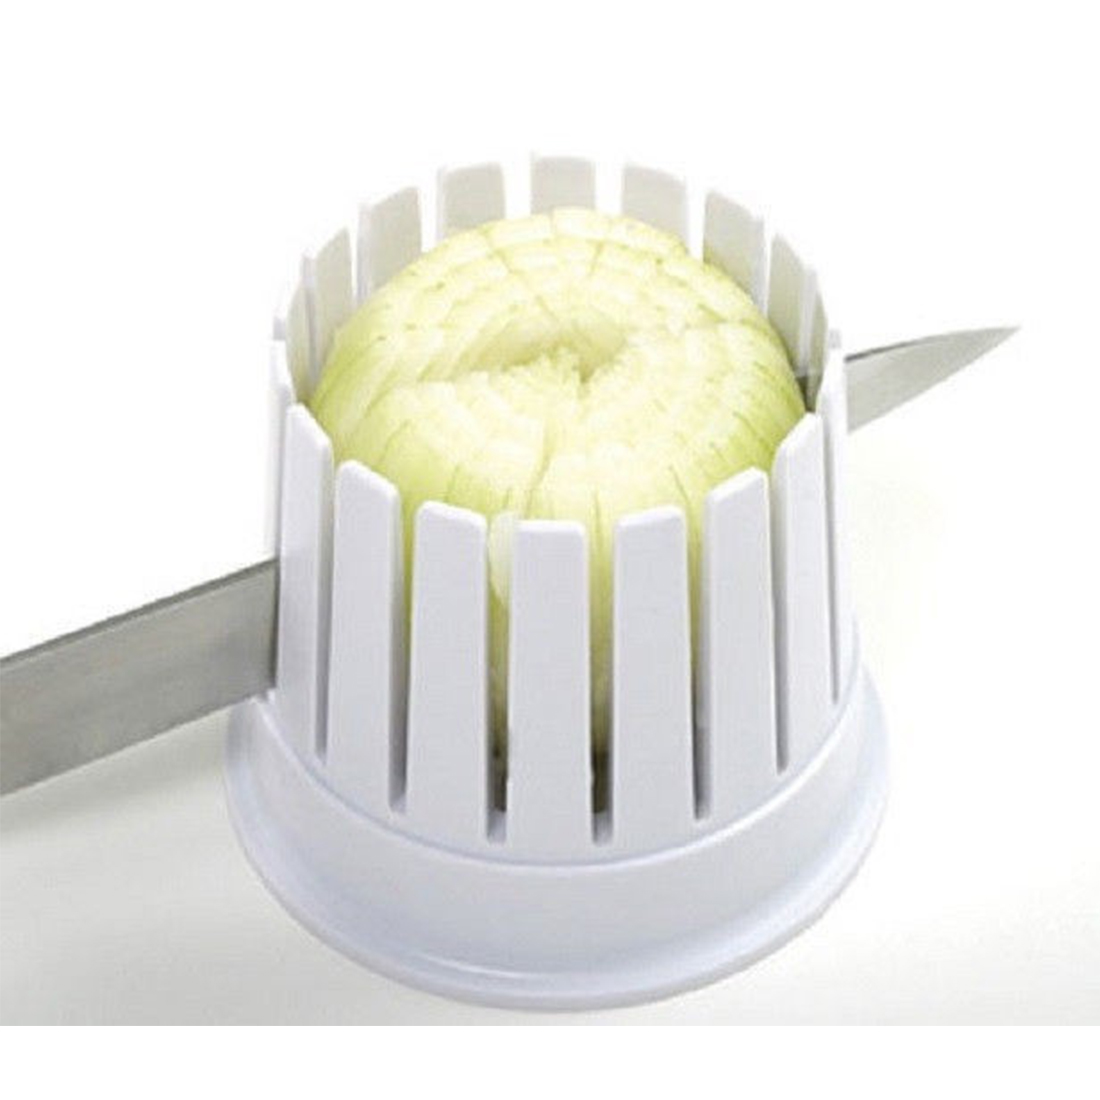 Practical Kitchen Onion Blossom Maker Onion Slicer Cutter Blossom Maker Fruit & Vegetable Tools Cutting Cut Onion(China (Mainland))